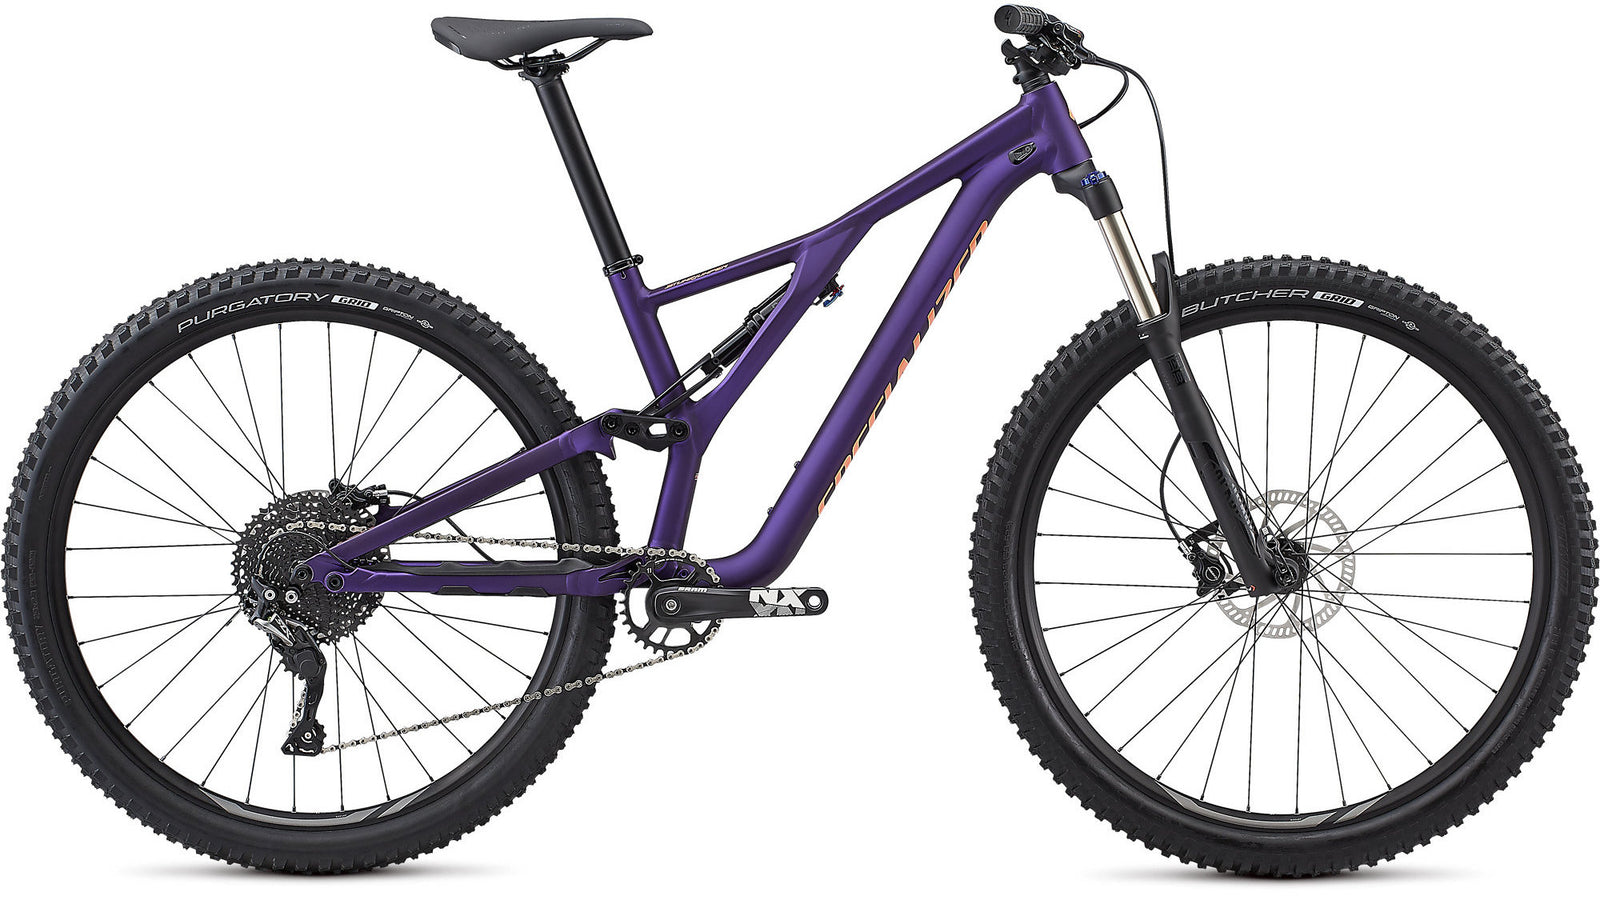 2018 All-New Stumpjumper Womens ST 29